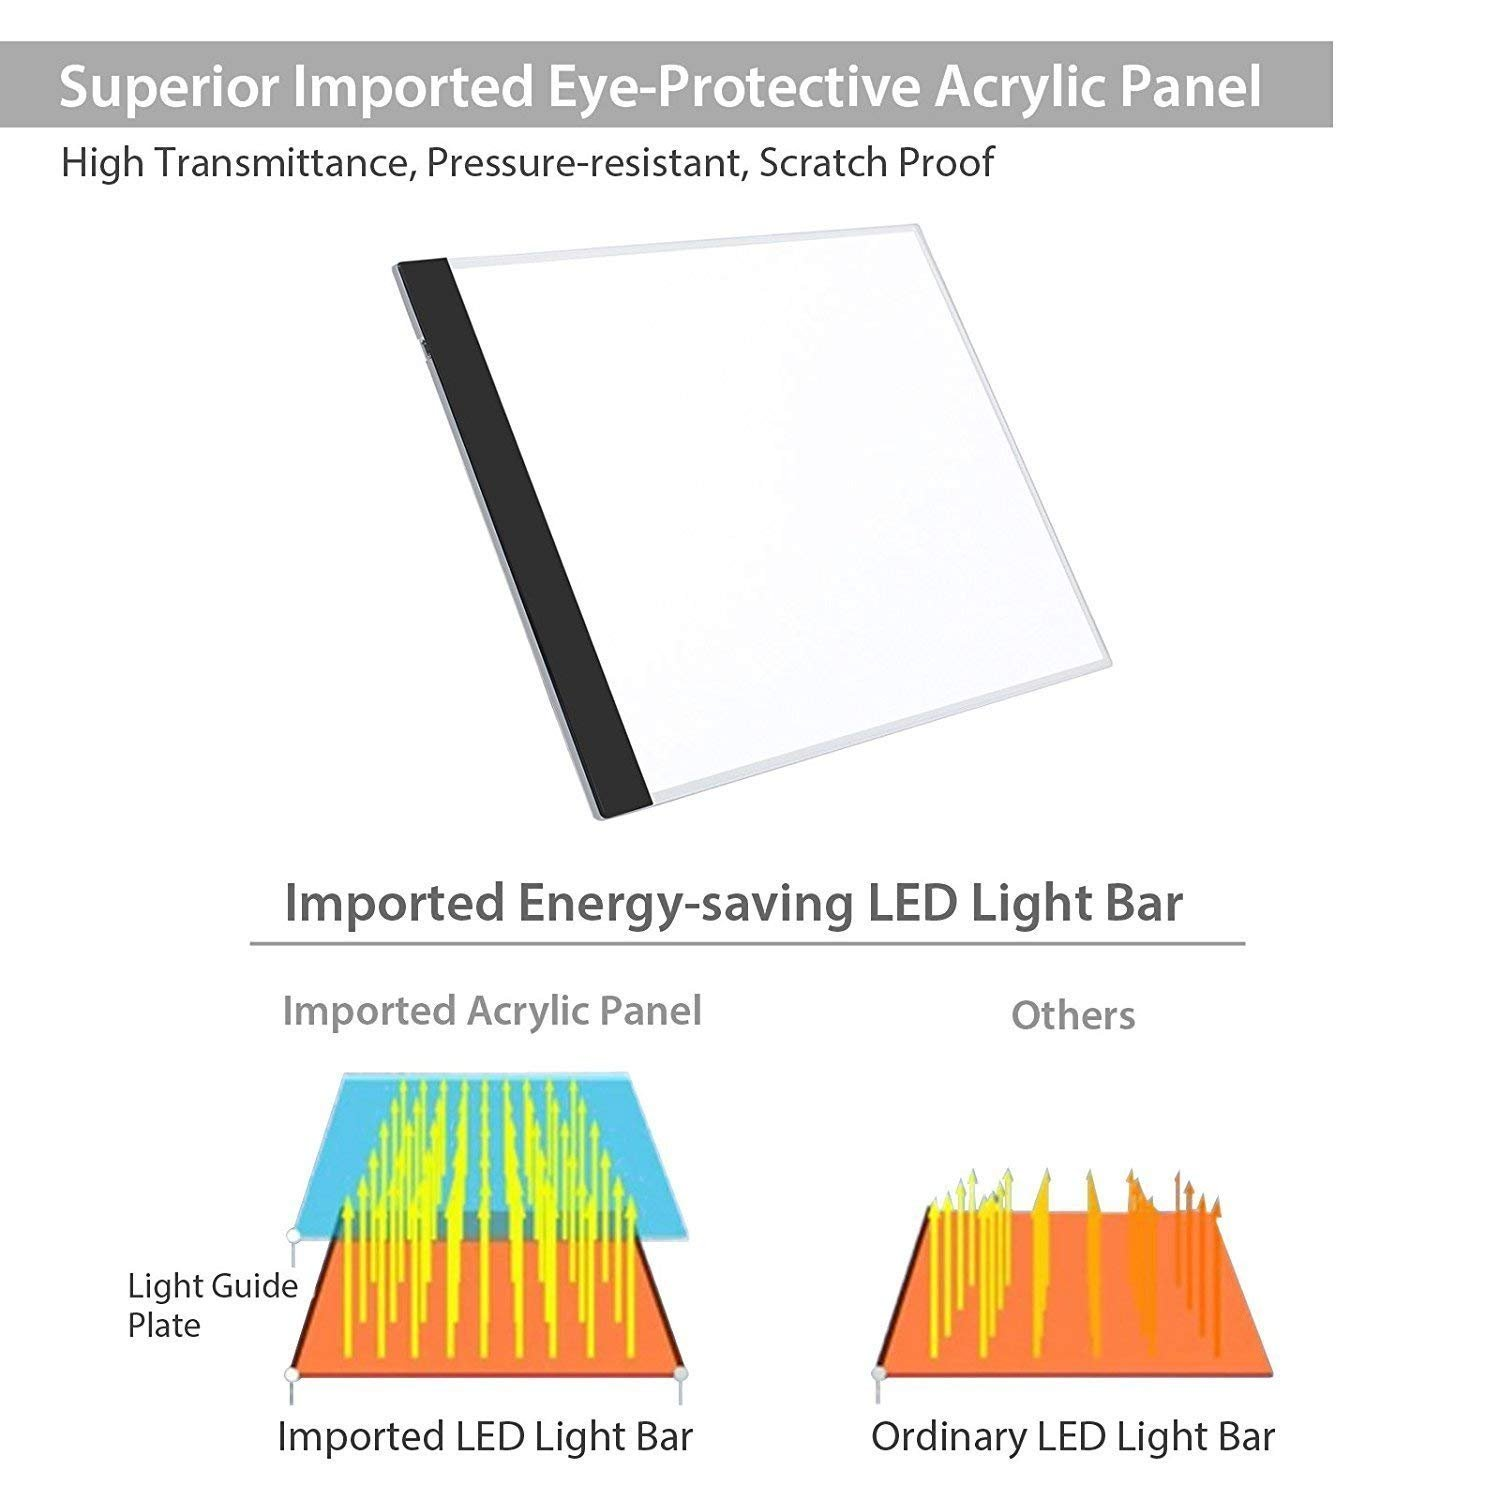 GOWARD Tracing Light Box, A4 Ultra Thin Portable USB Power Adjustable Brightness LED Tracing Light Table with Advanced Filter to Prevent Eye Fatigue, for Artists, Drawing, Sketching, Animation by GOWARD